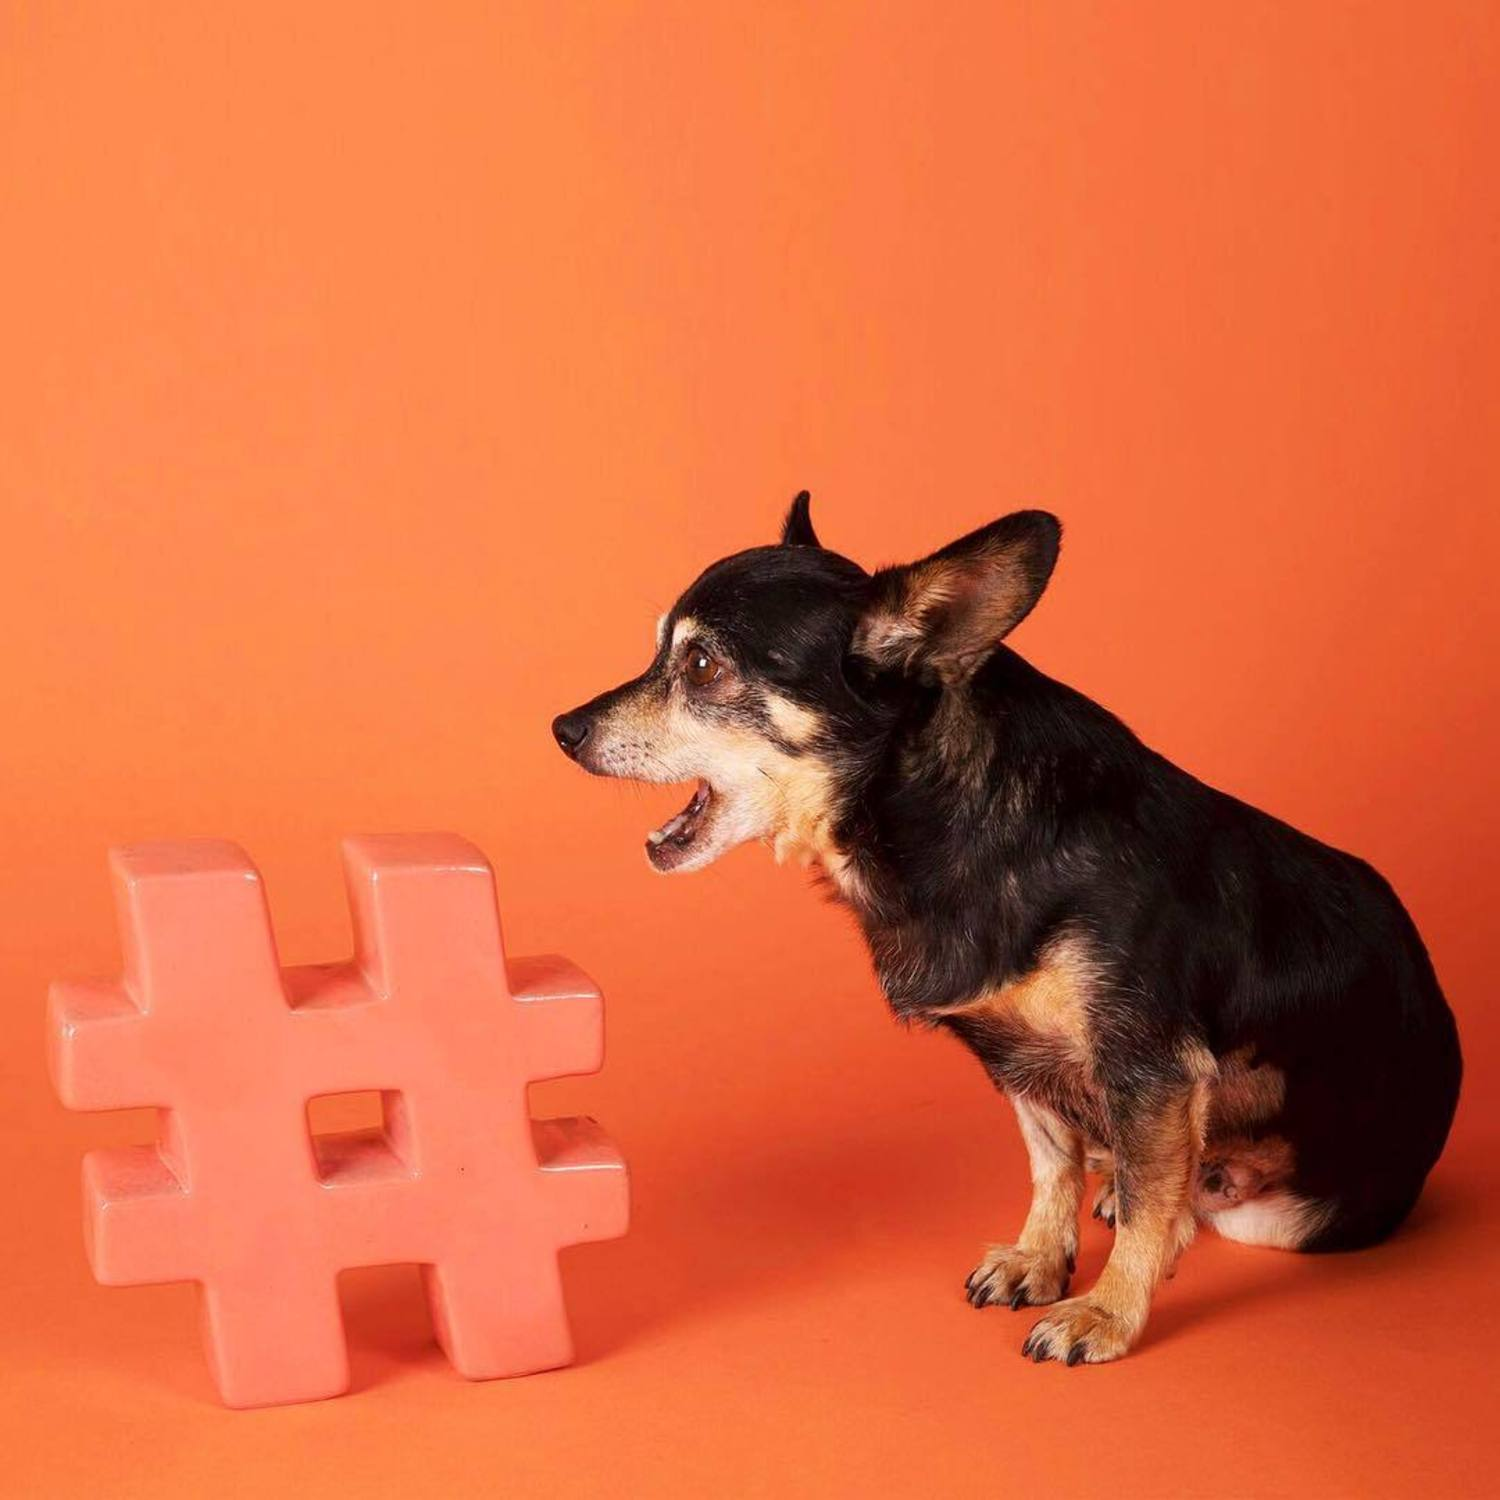 Have a four-legged BFF? Don't forget to hashtag #humansbf for a chance to be feature on our insta story! 🐾